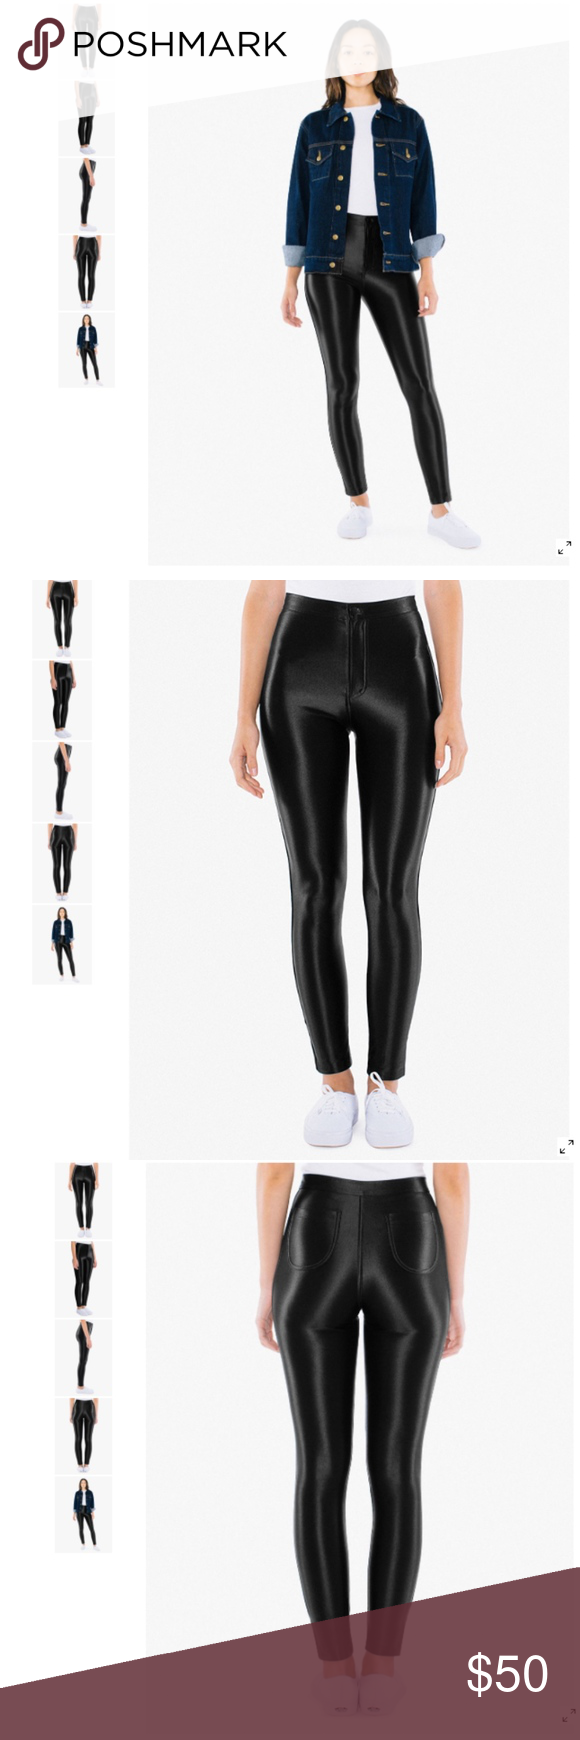 9a144719e7a7b1 NEW American Apparel High Rise Disco Pant rsaah300 New Without Tags  Currently Retail at American Apparel